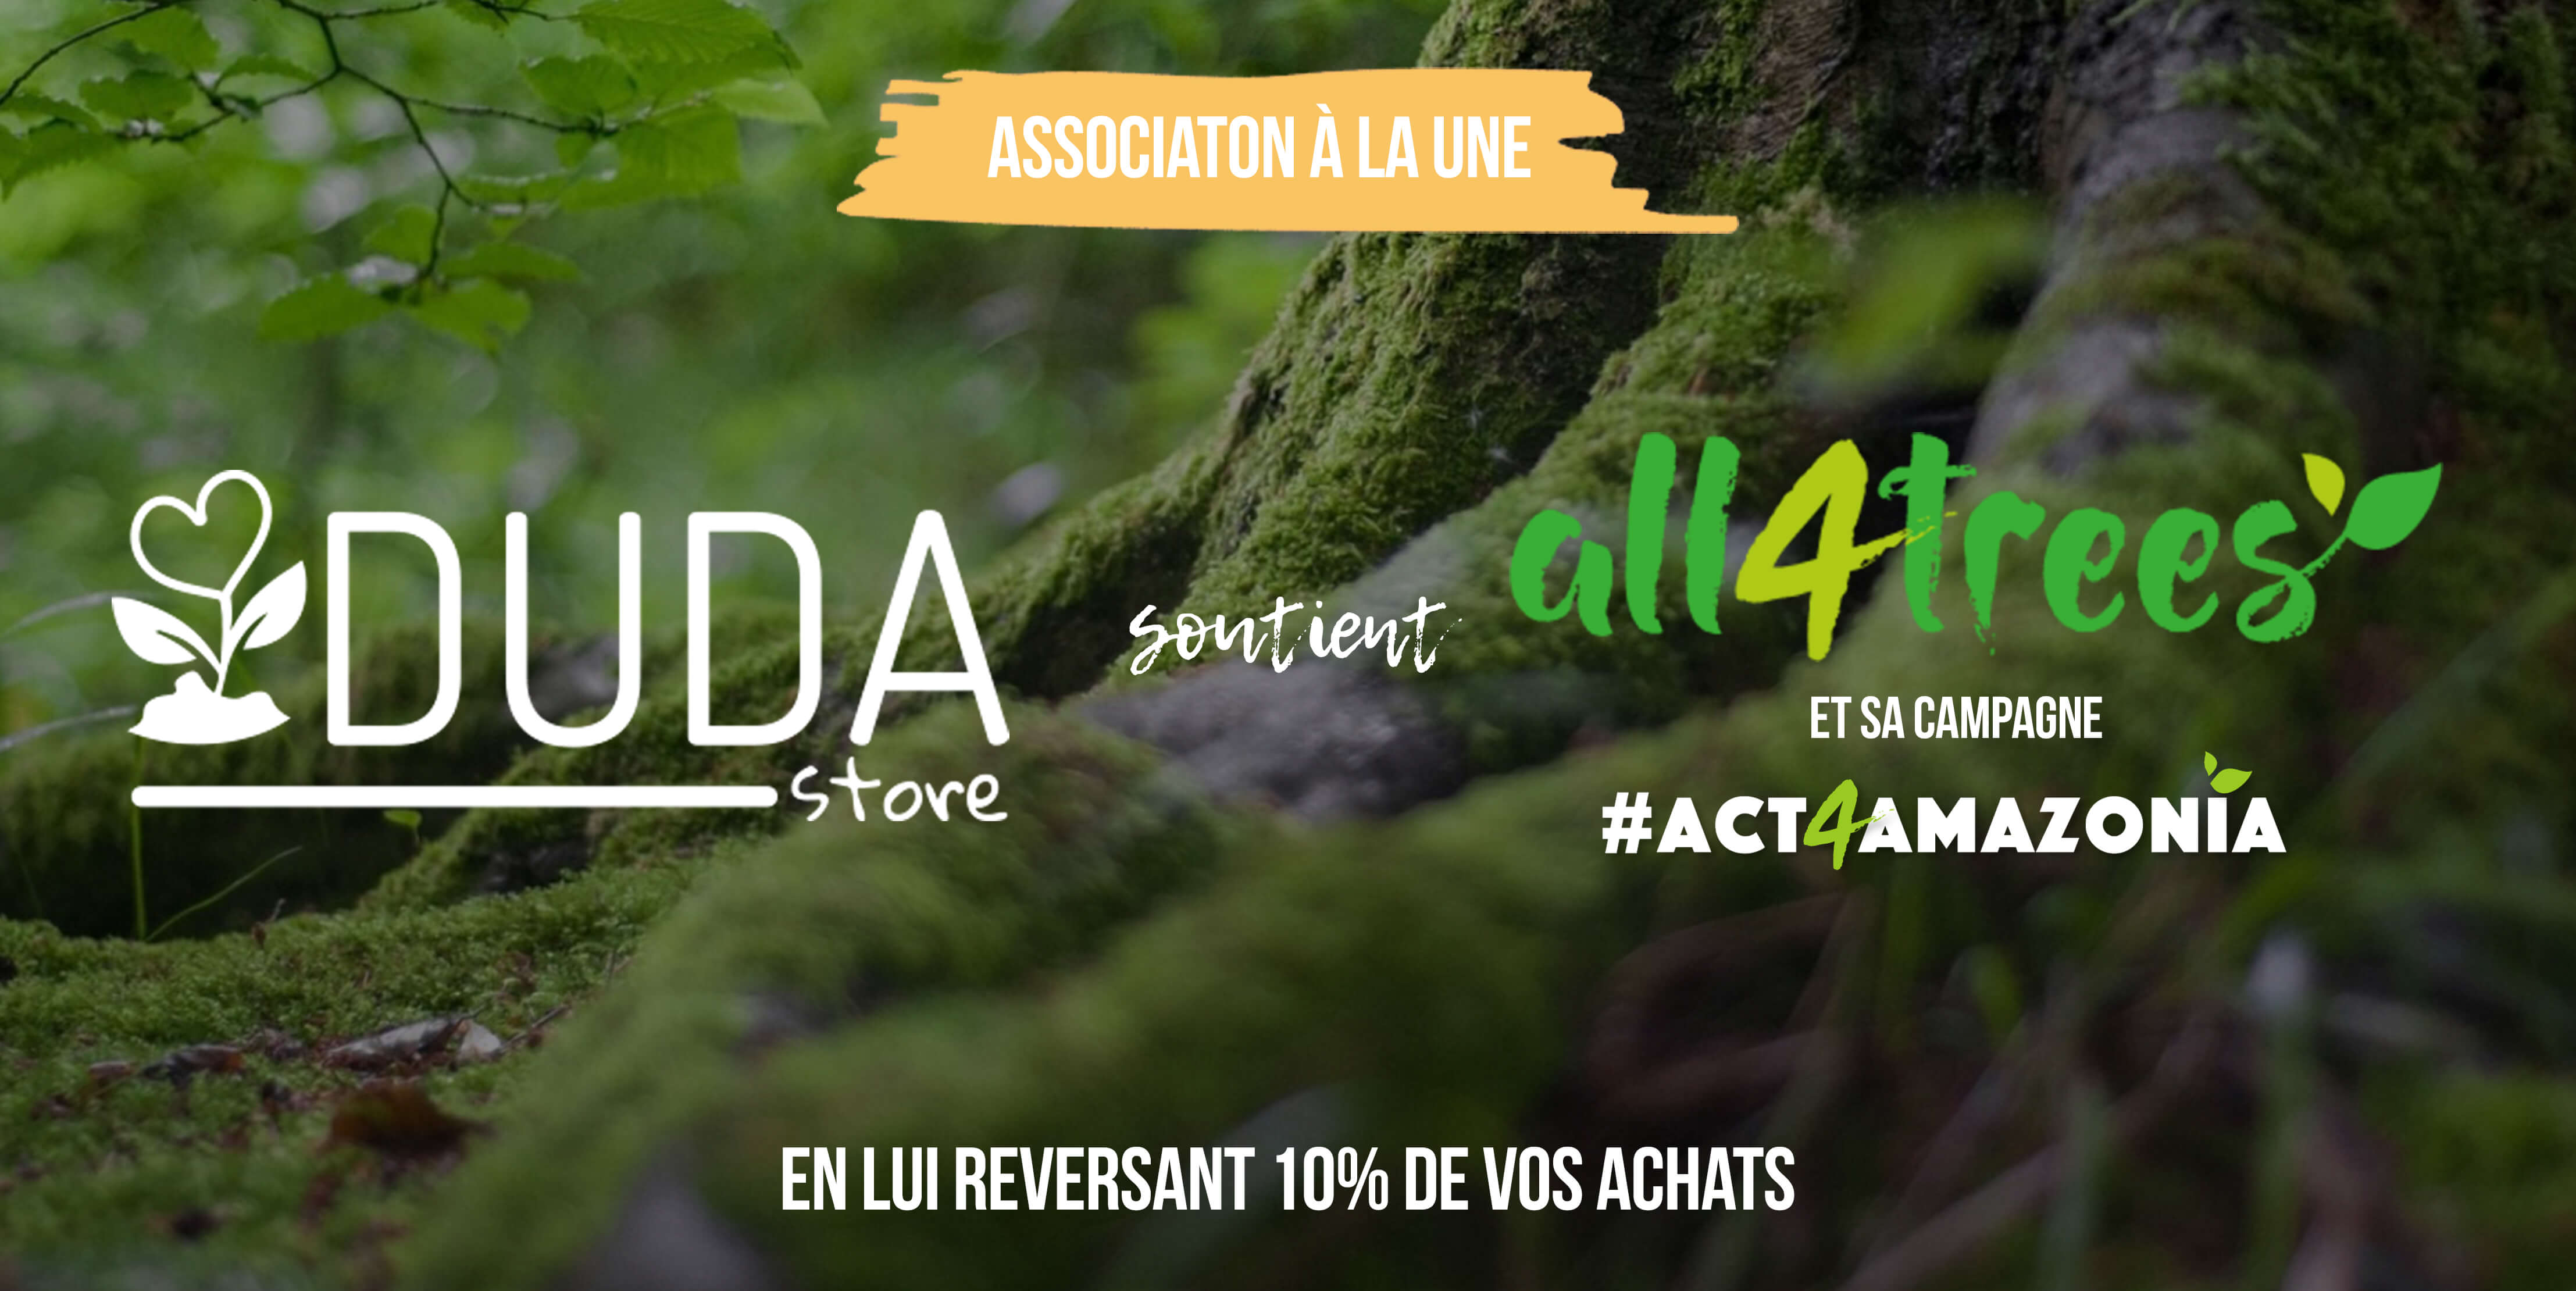 La communauté all4trees et sa campagne #act4amazonia